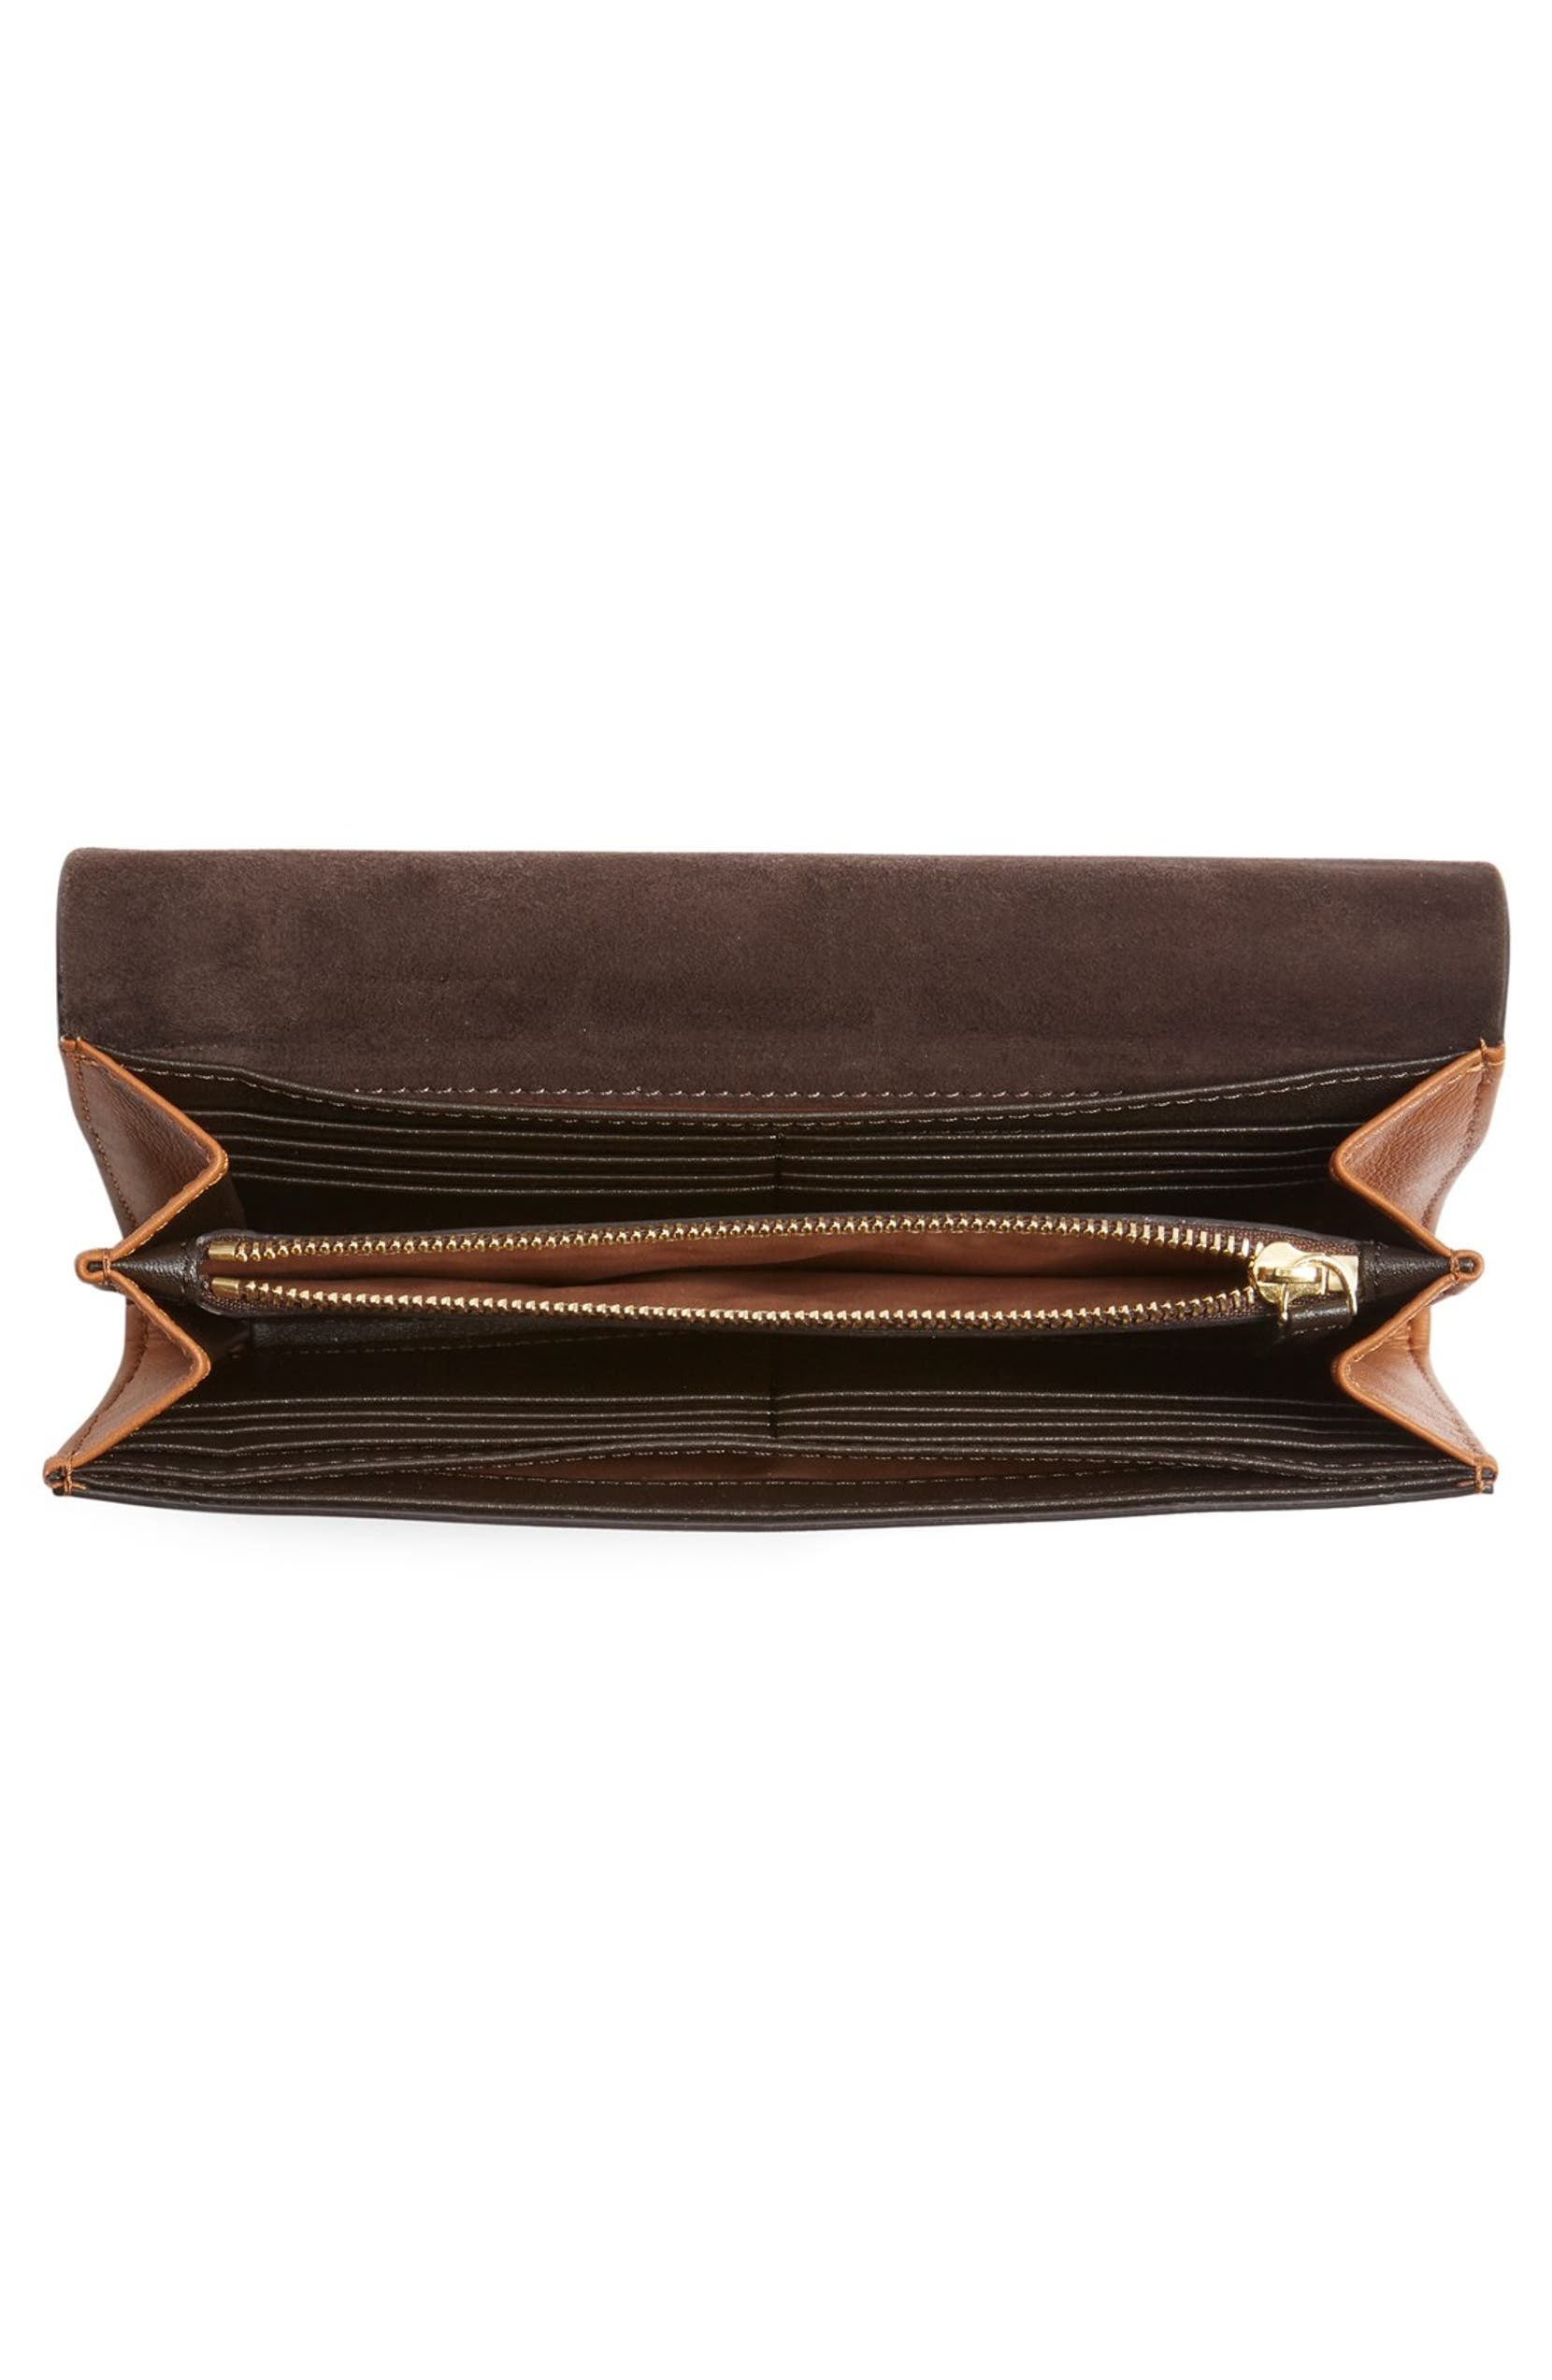 ce3e7f9f1a1d Michael Kors 'Miranda' Leather Continental Wallet | Nordstrom